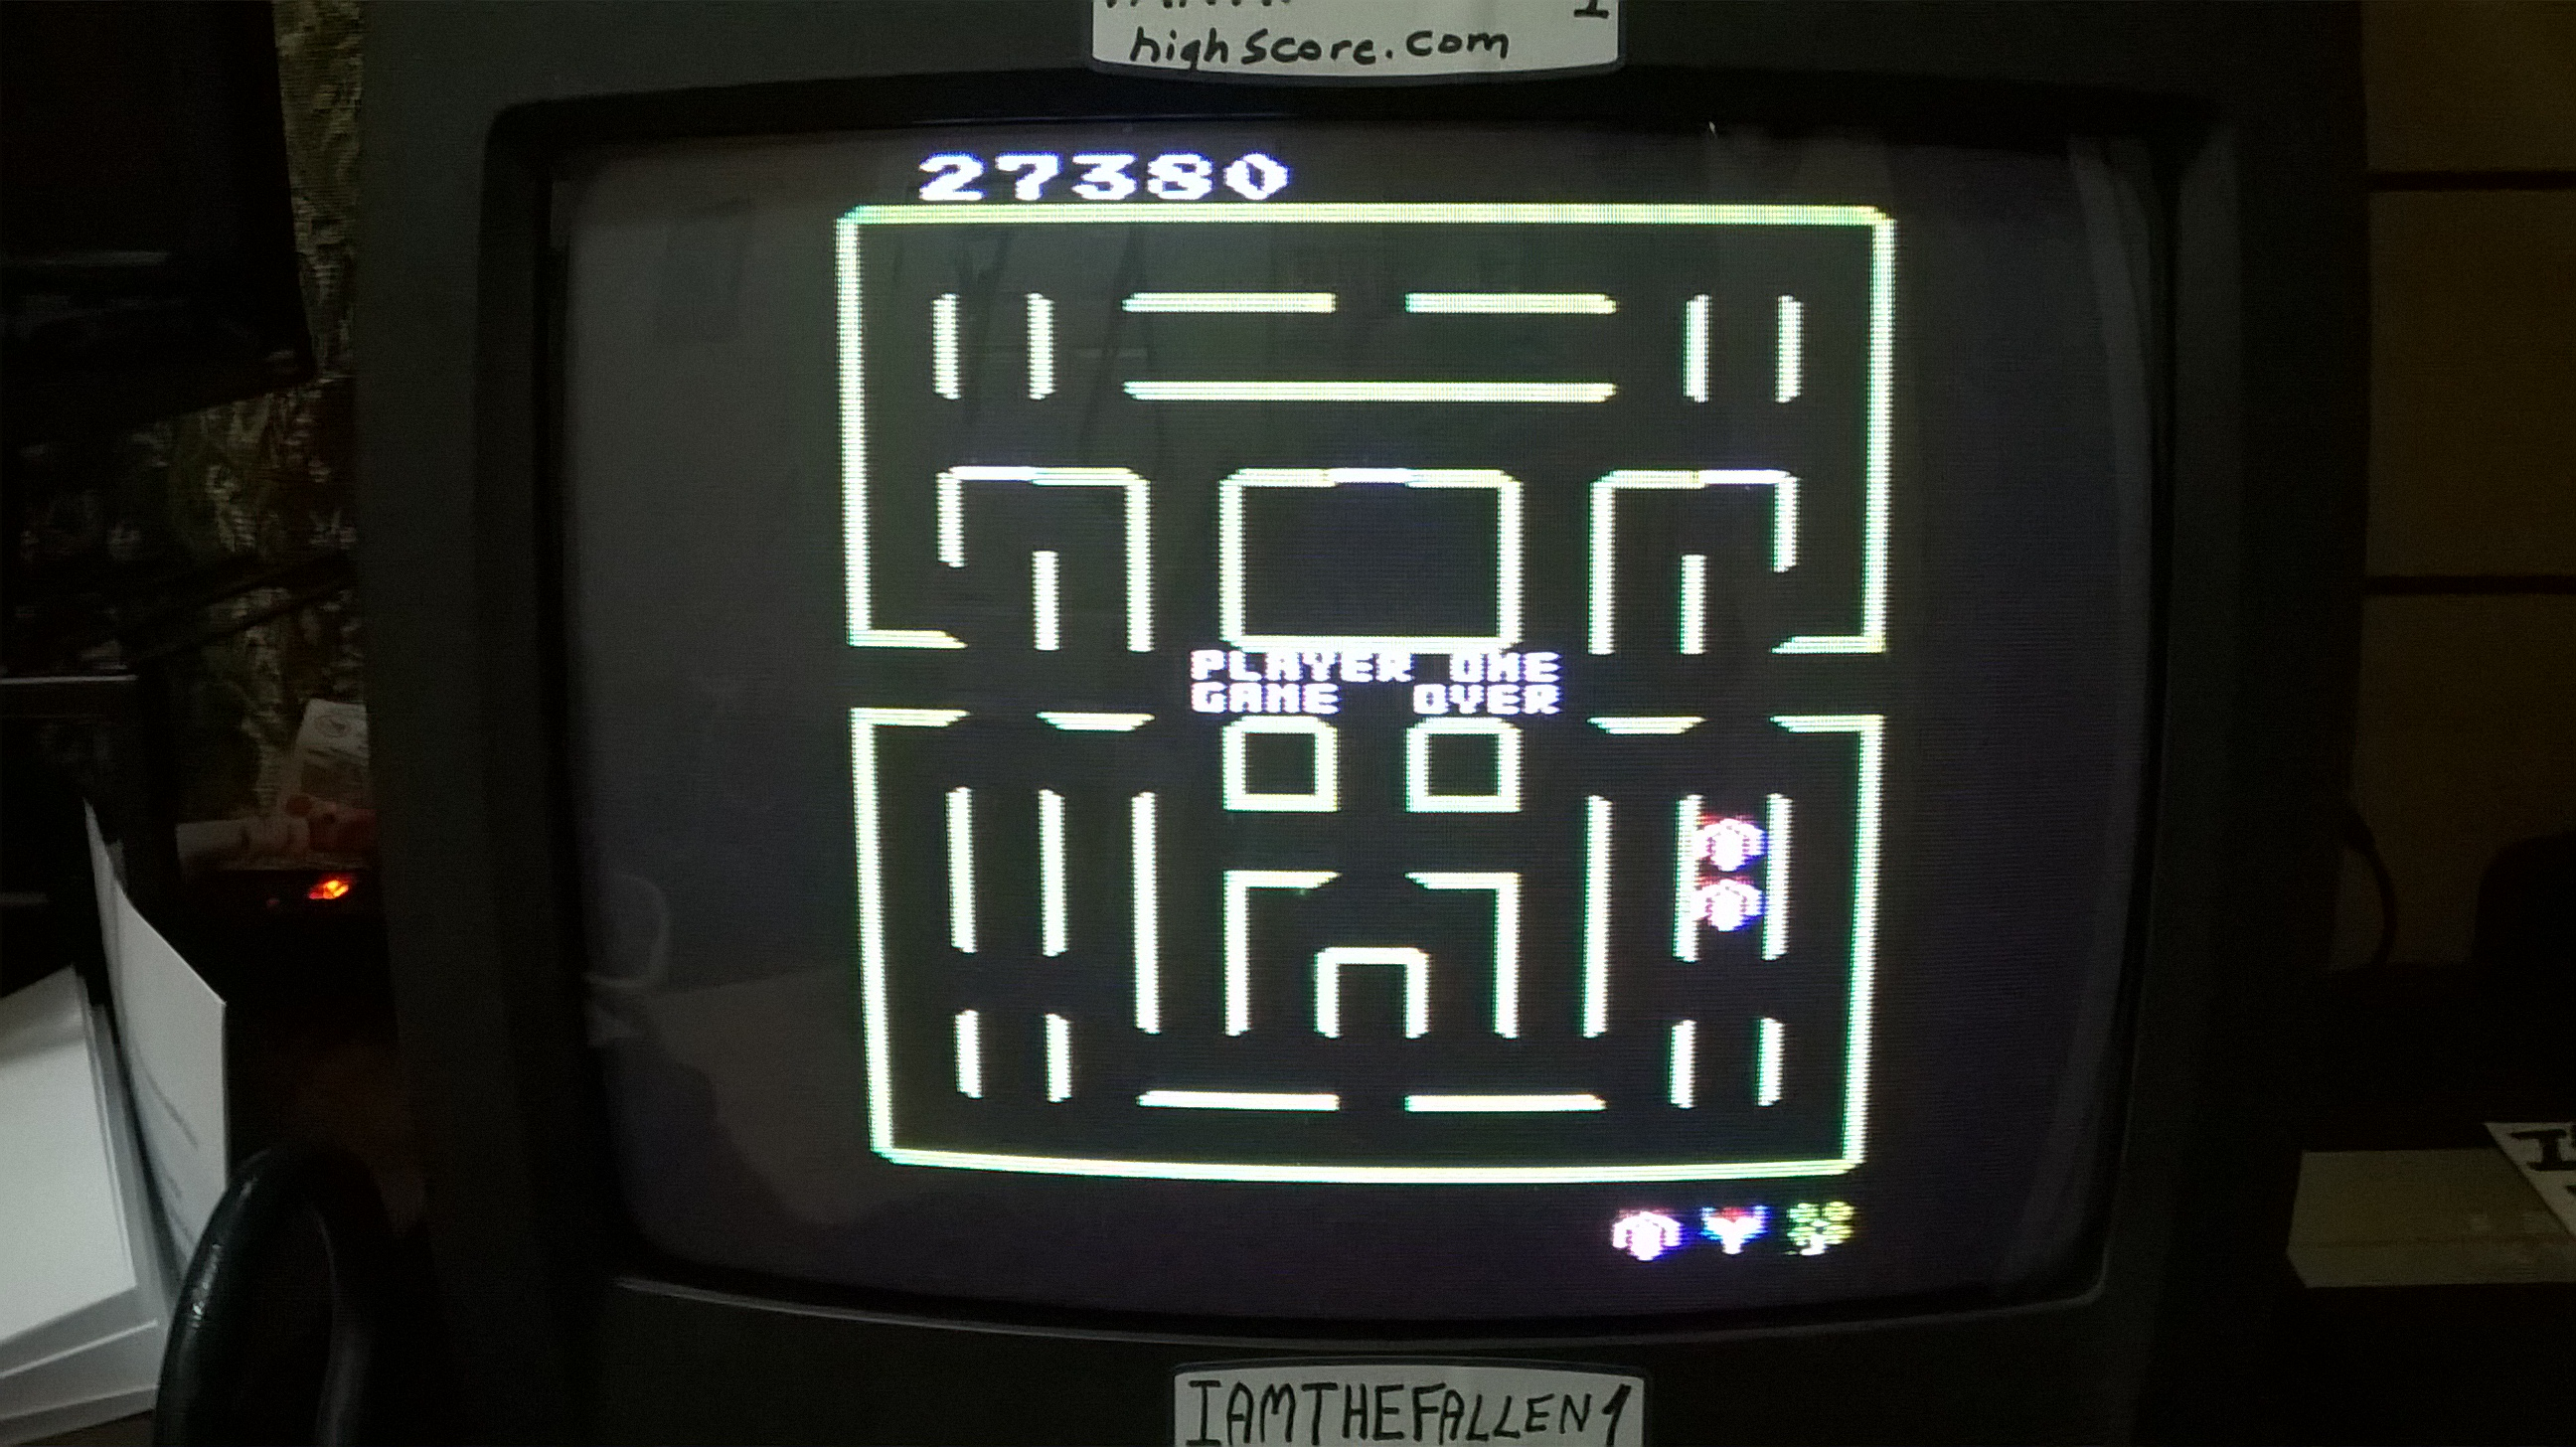 iamthefallen1: Super Pac-Man: Clover Start (Atari 7800) 27,380 points on 2018-02-21 20:15:15